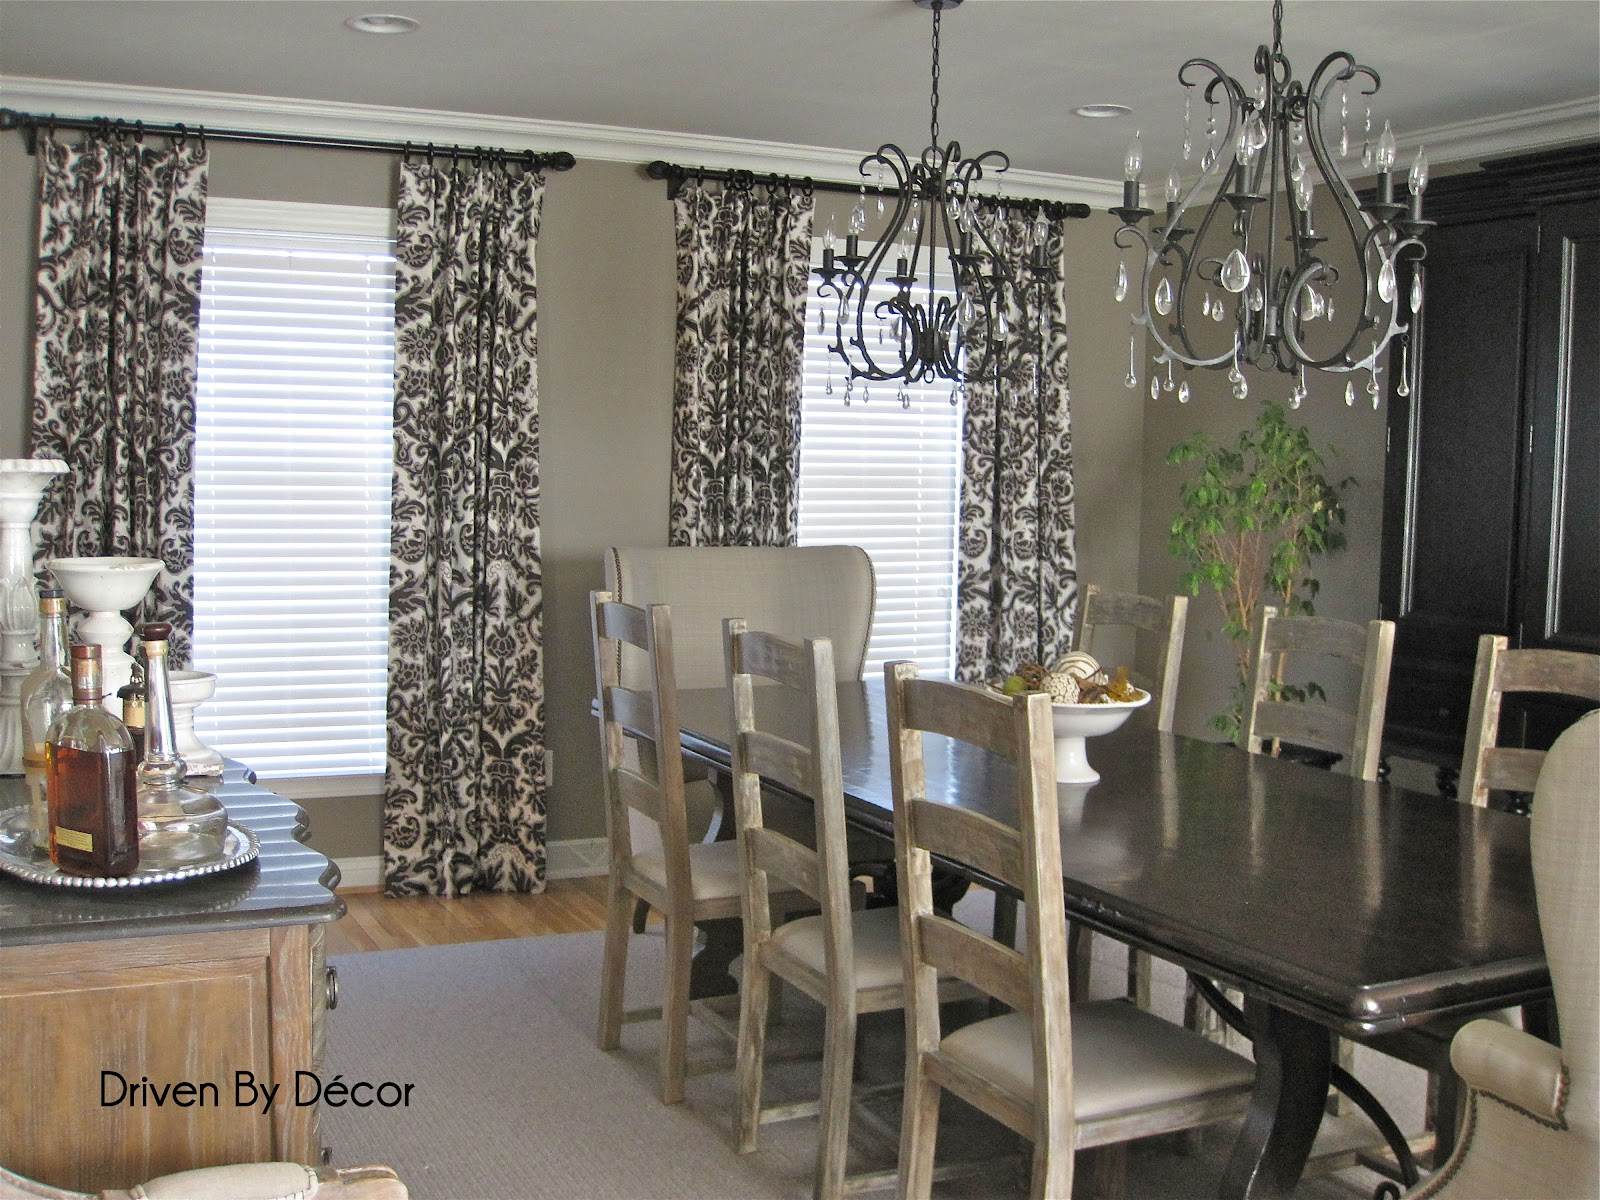 Driven By Décor: Drapery Panels for a Gray Dining Room